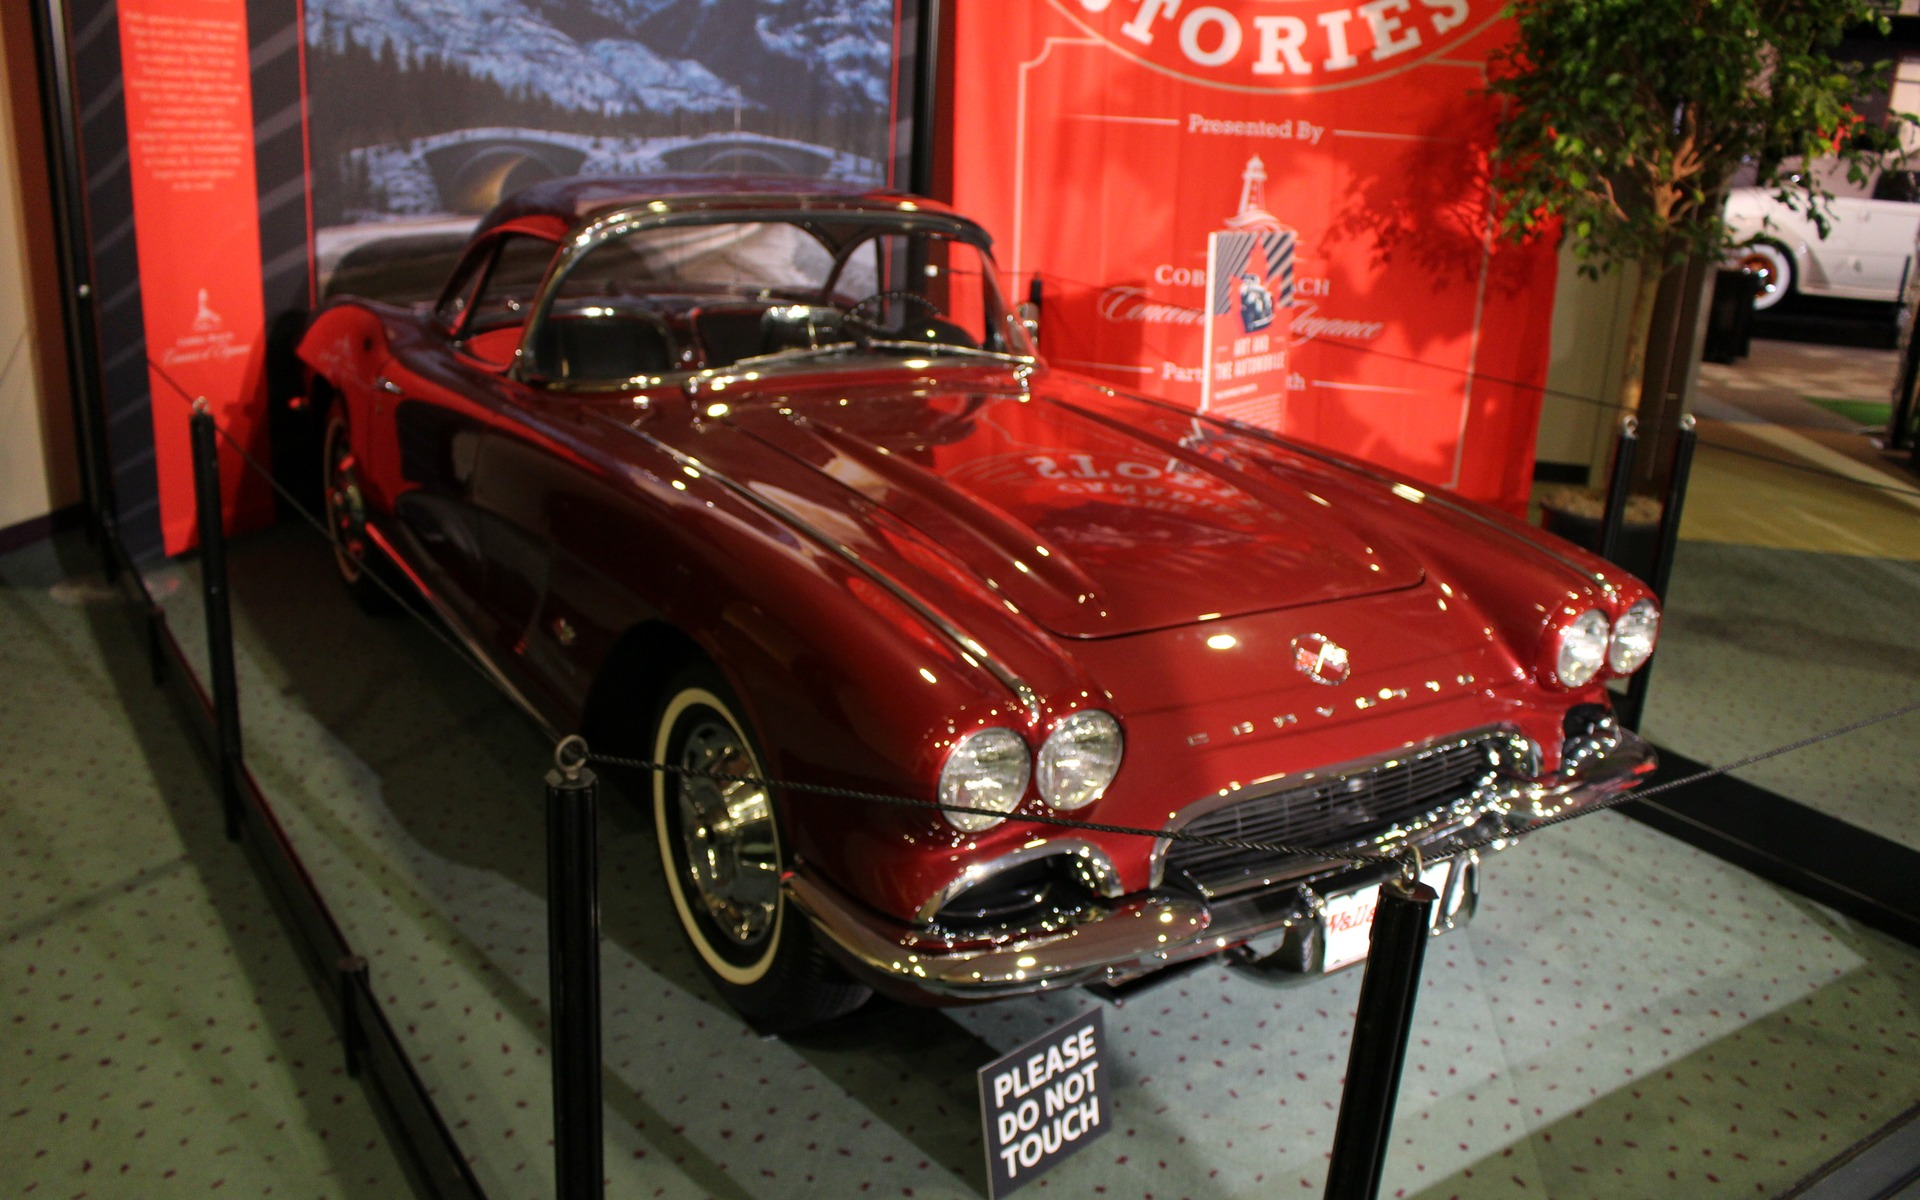 Classic Cars at the 2017 Toronto Auto Show - 12/39